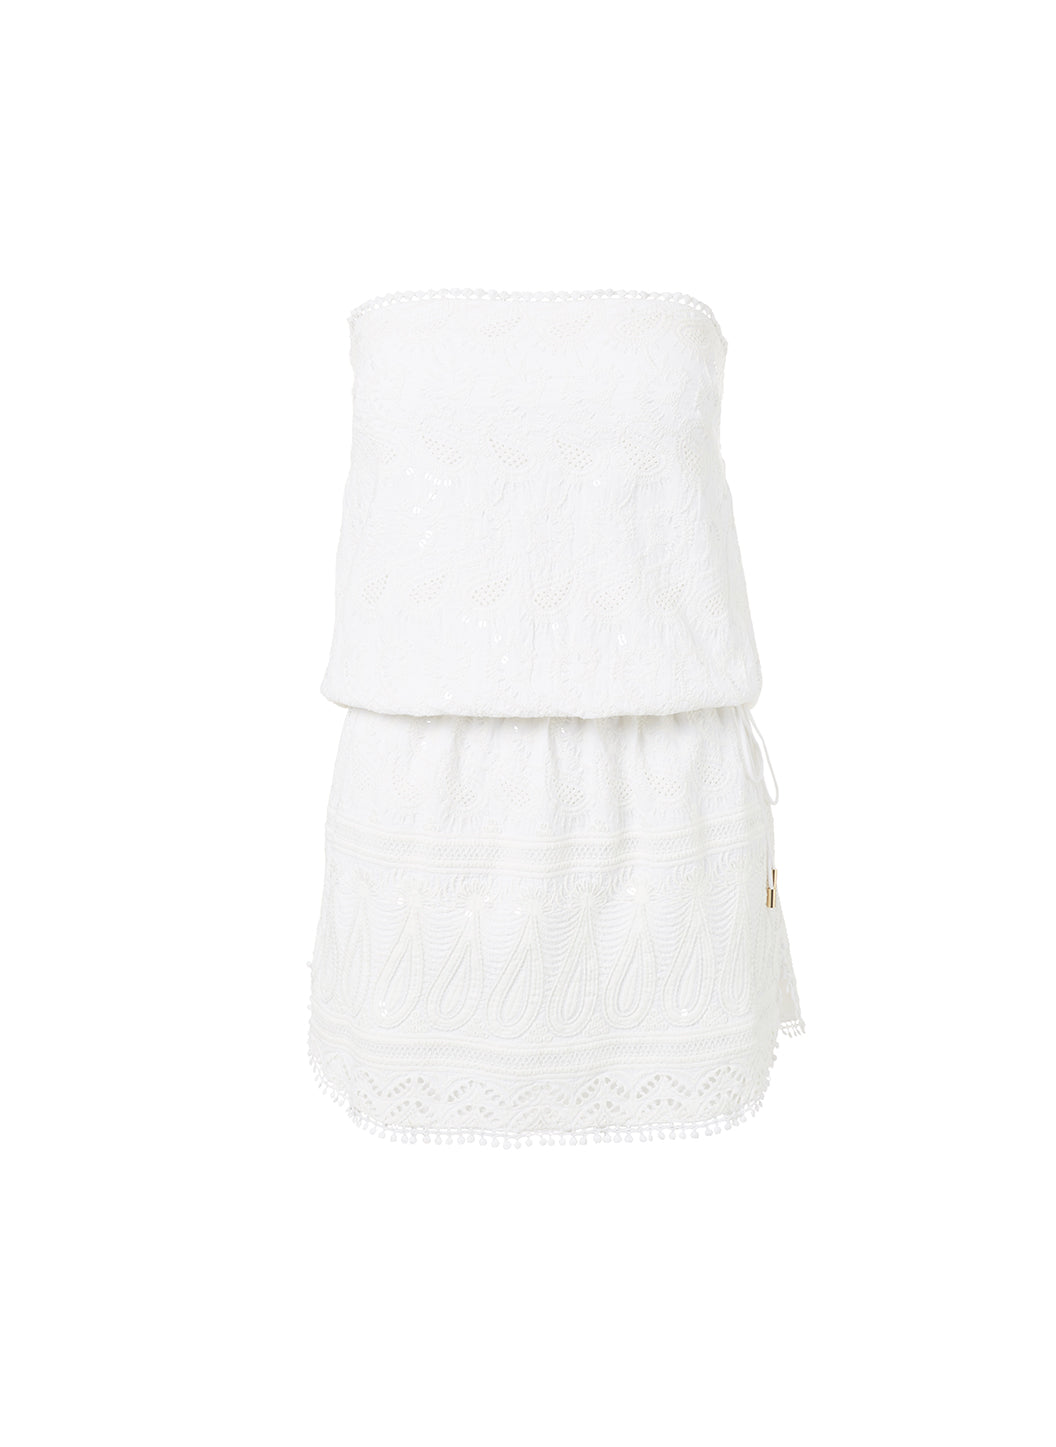 Tia White Bandeau Embroidered Short Beach Dress - Melissa Odabash Beach Dresses